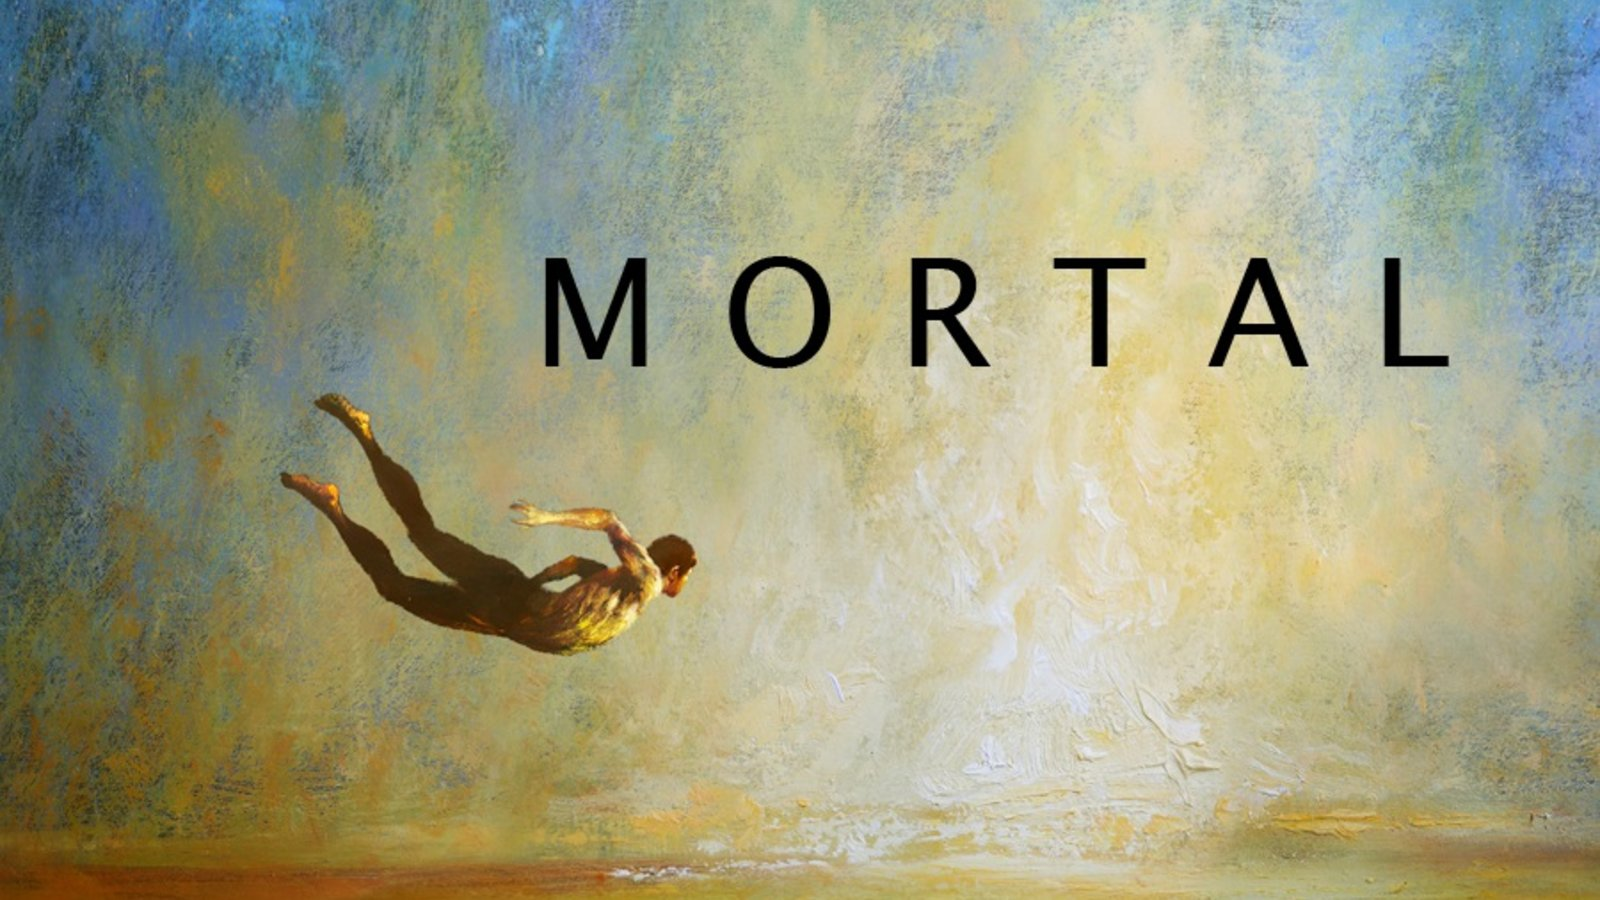 Mortal - Changing Views on Life and Death